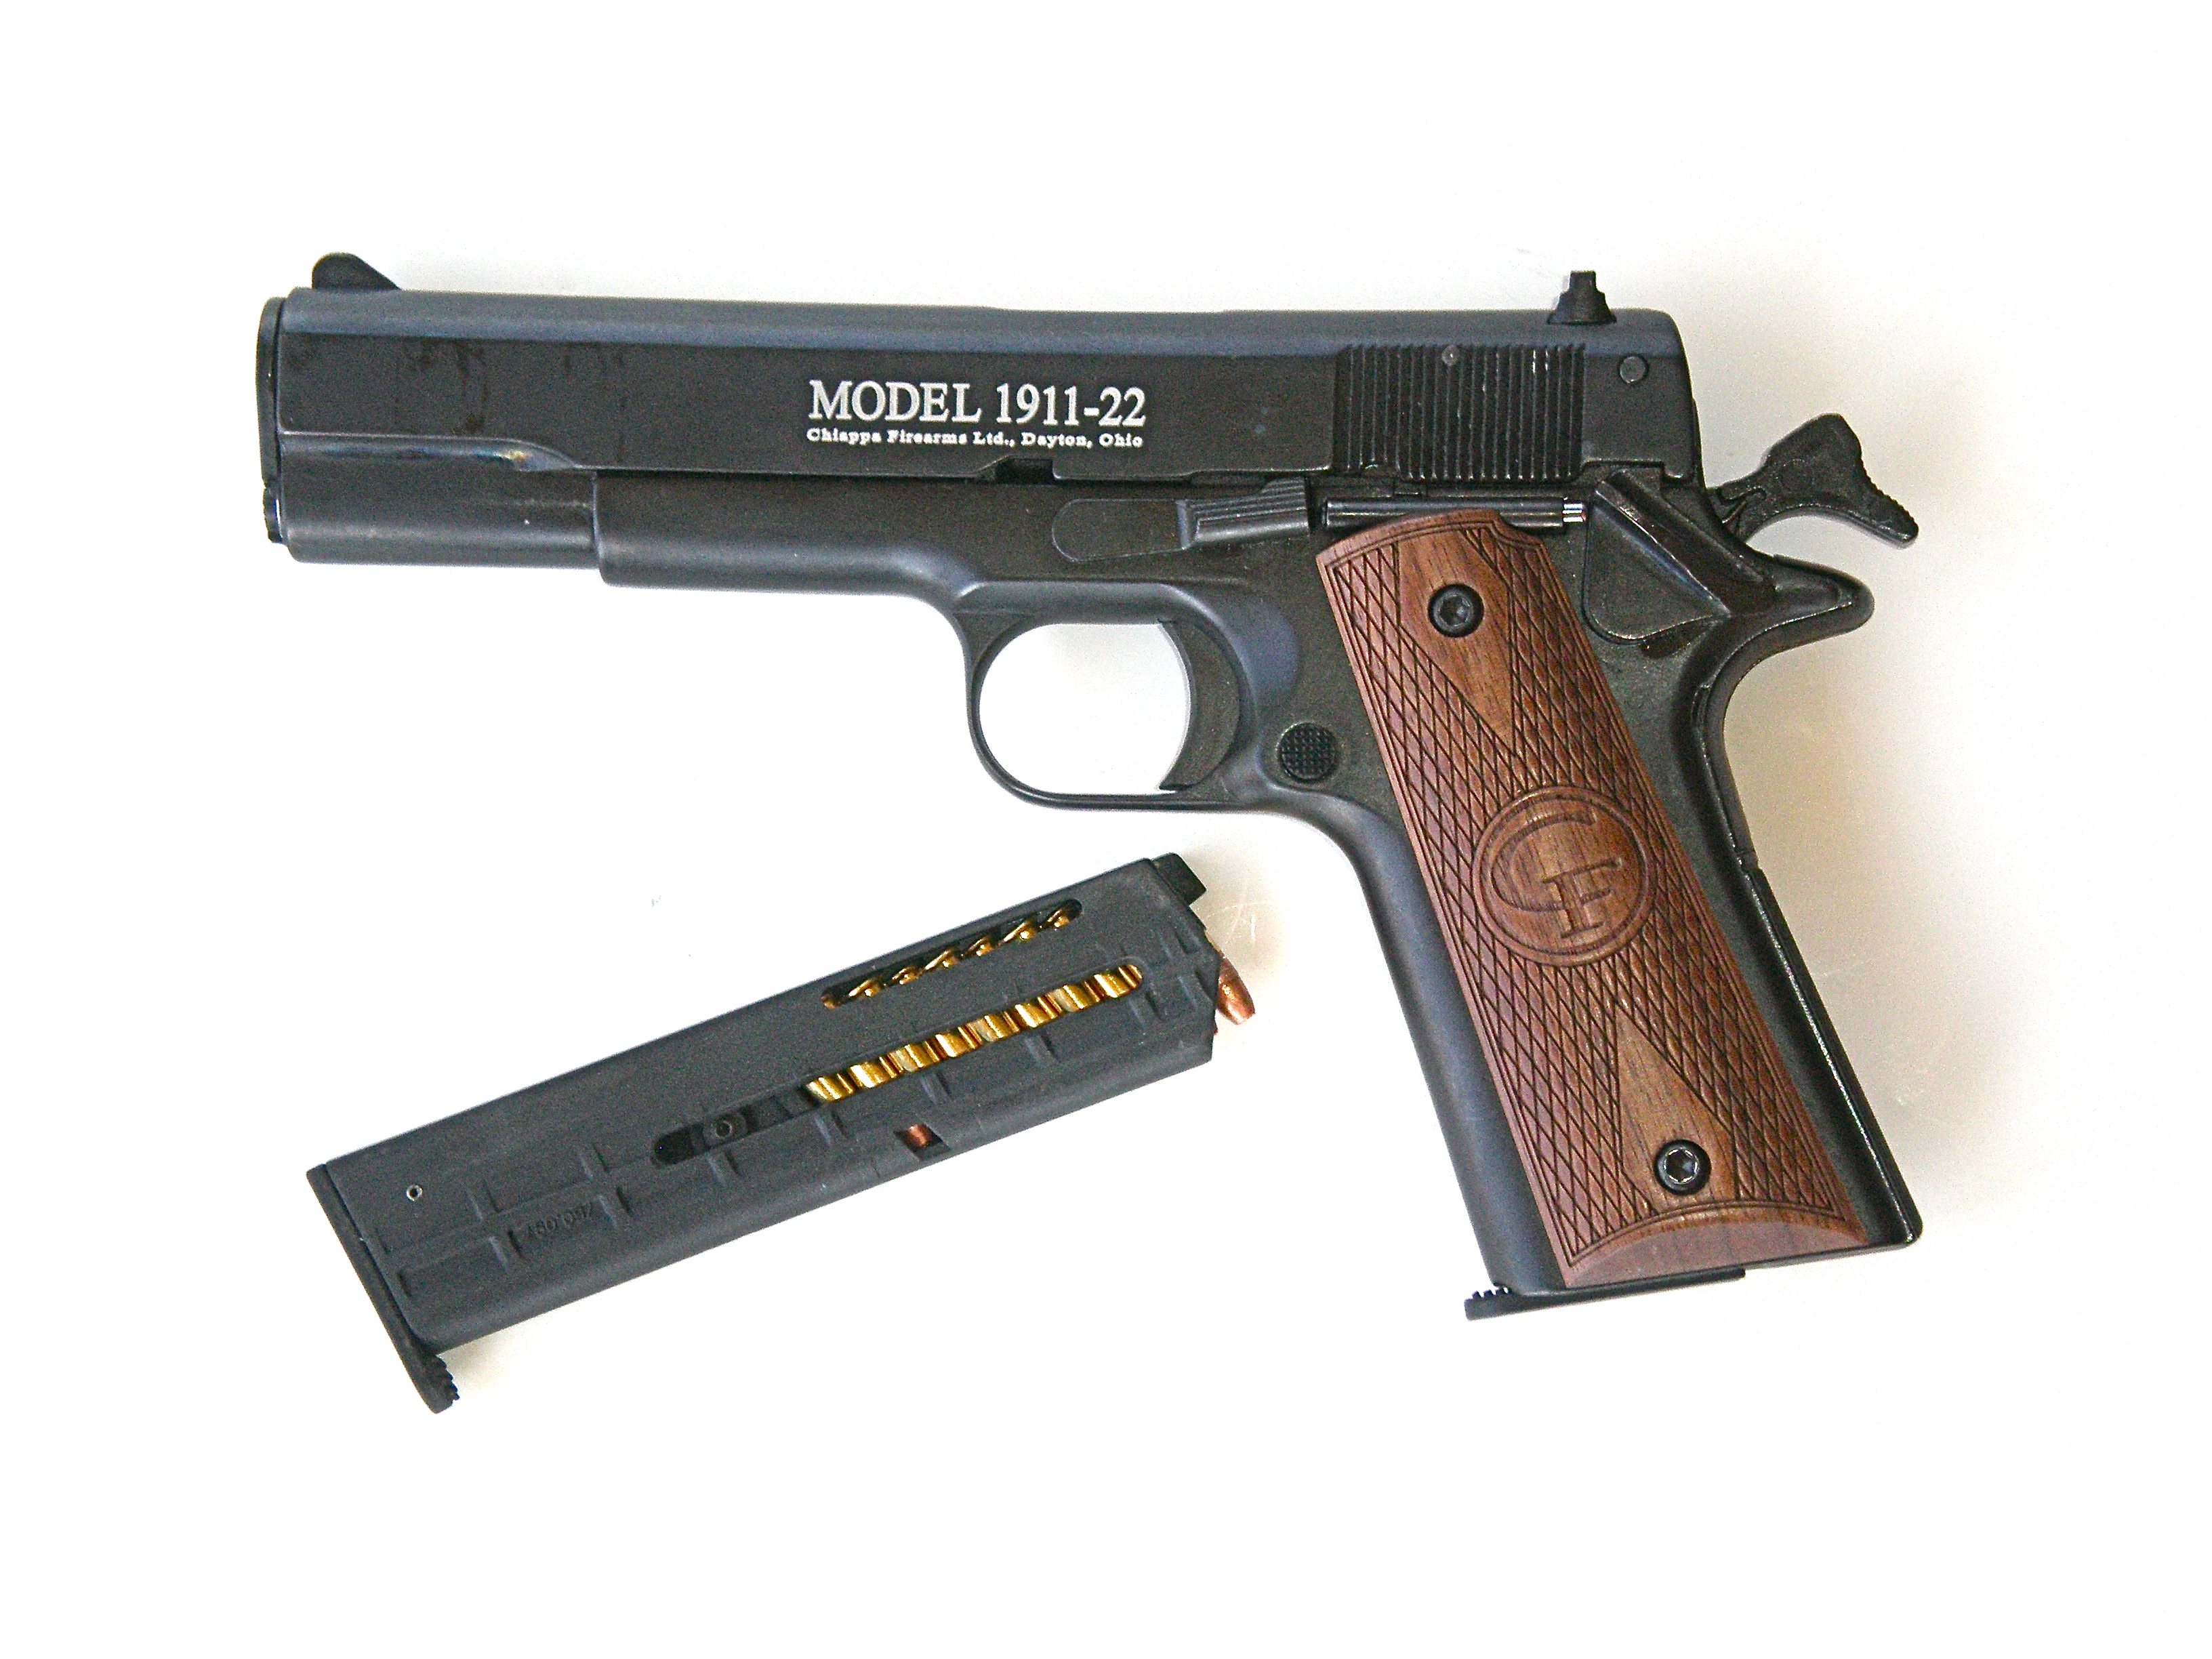 Swift Pistol: characteristics, price and test results 76